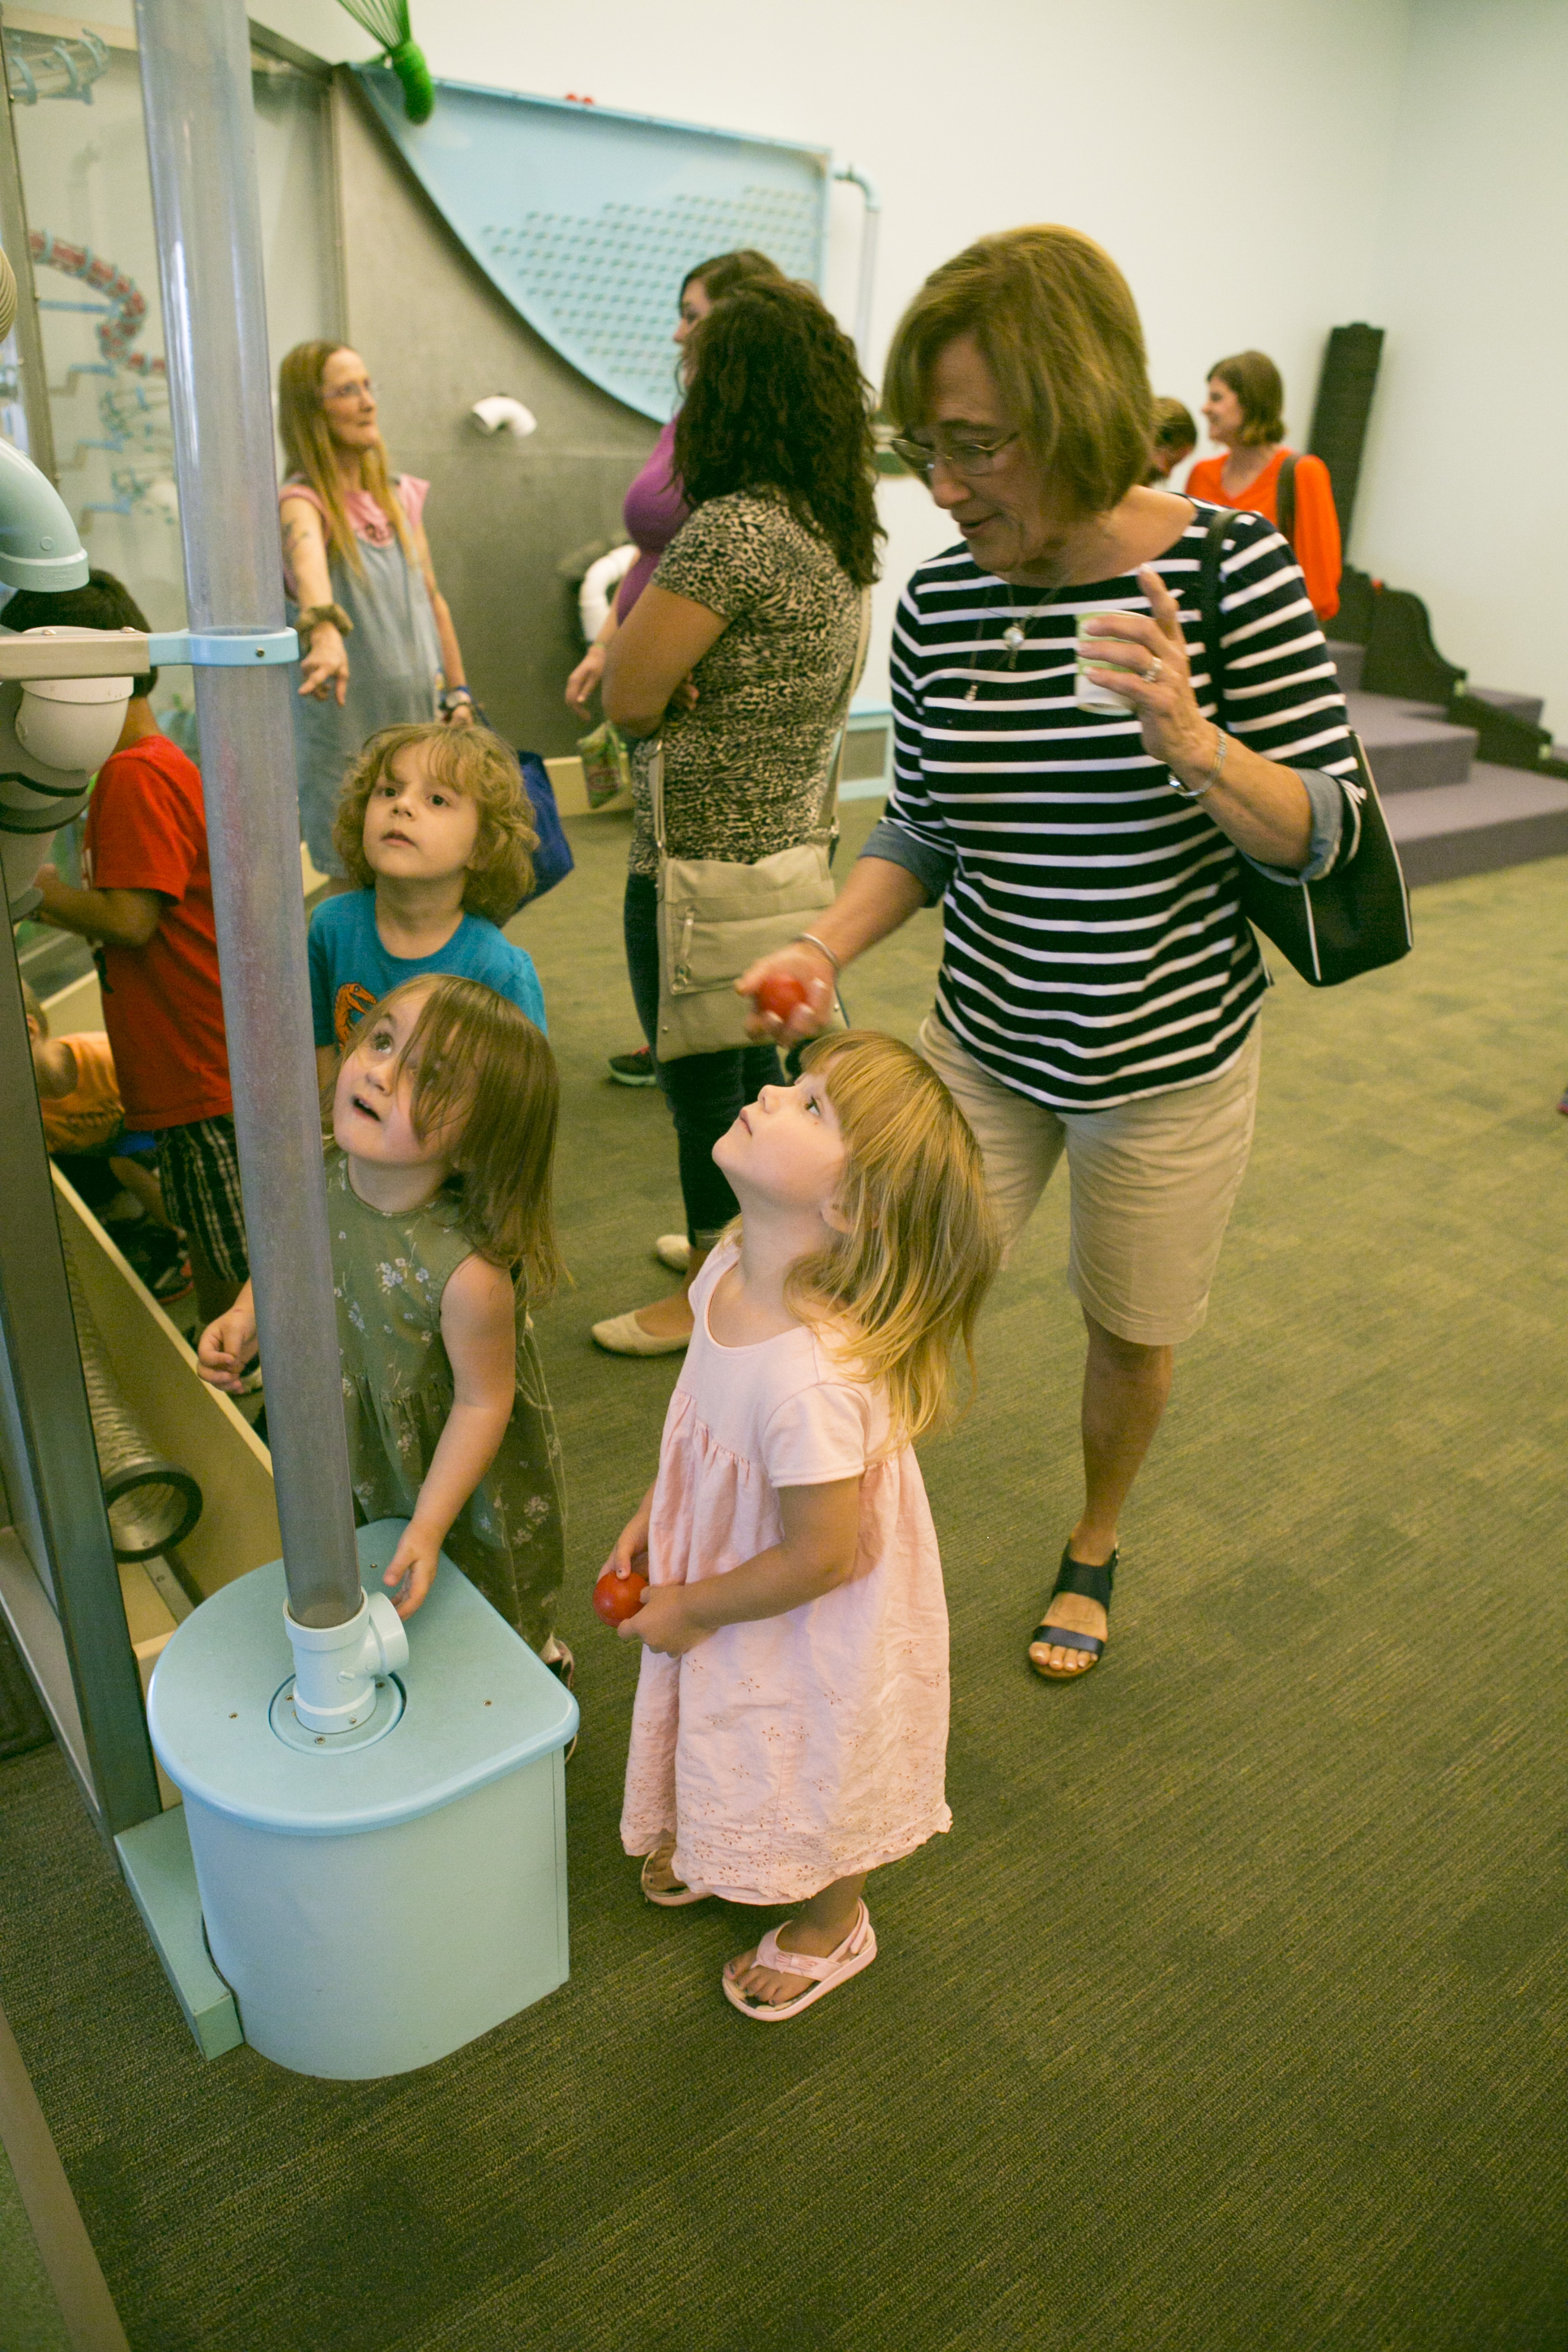 Indianpolis_Childrens_Museum-001_18